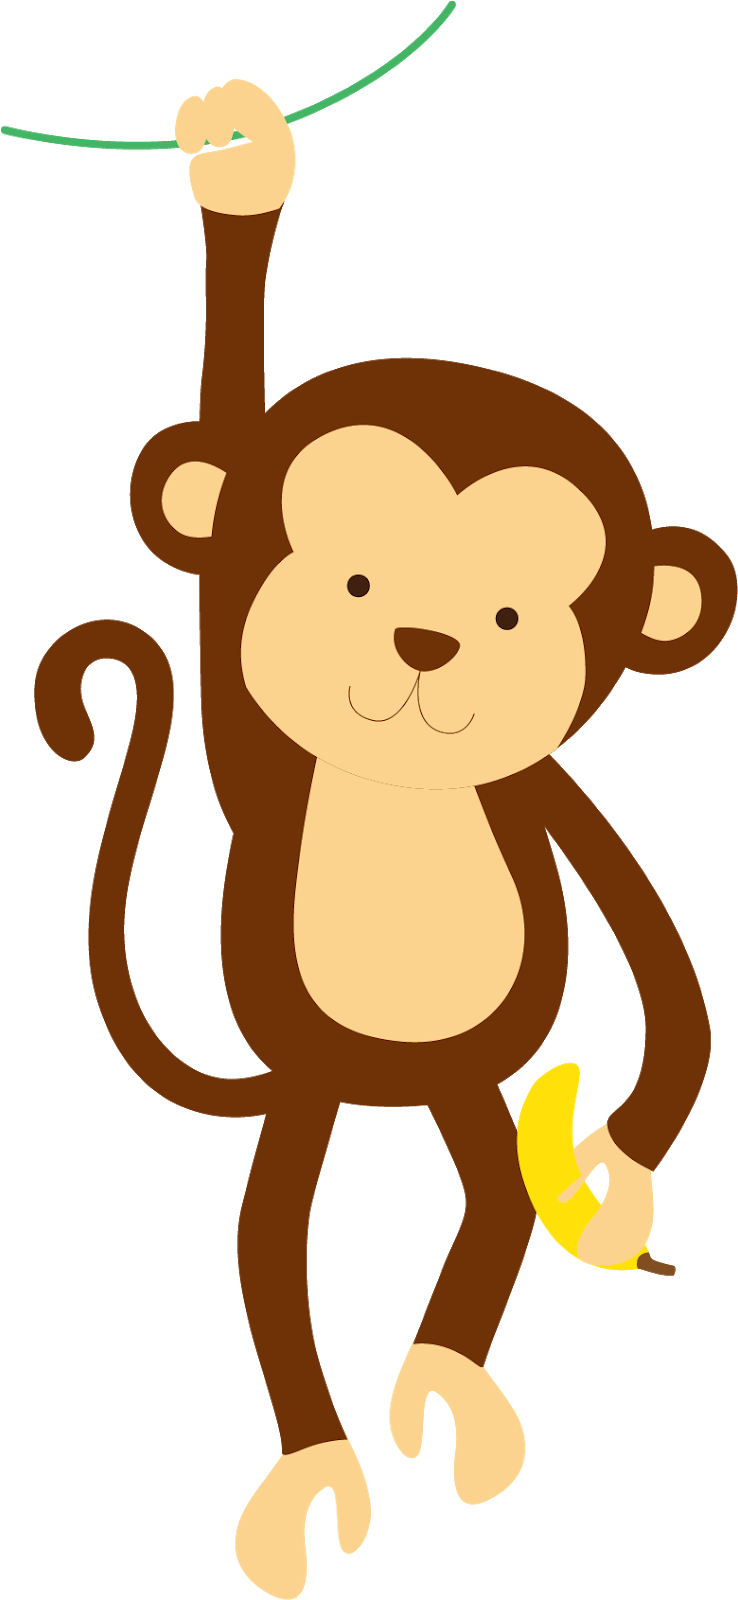 Chimpanzee Cartoon Clip Art.